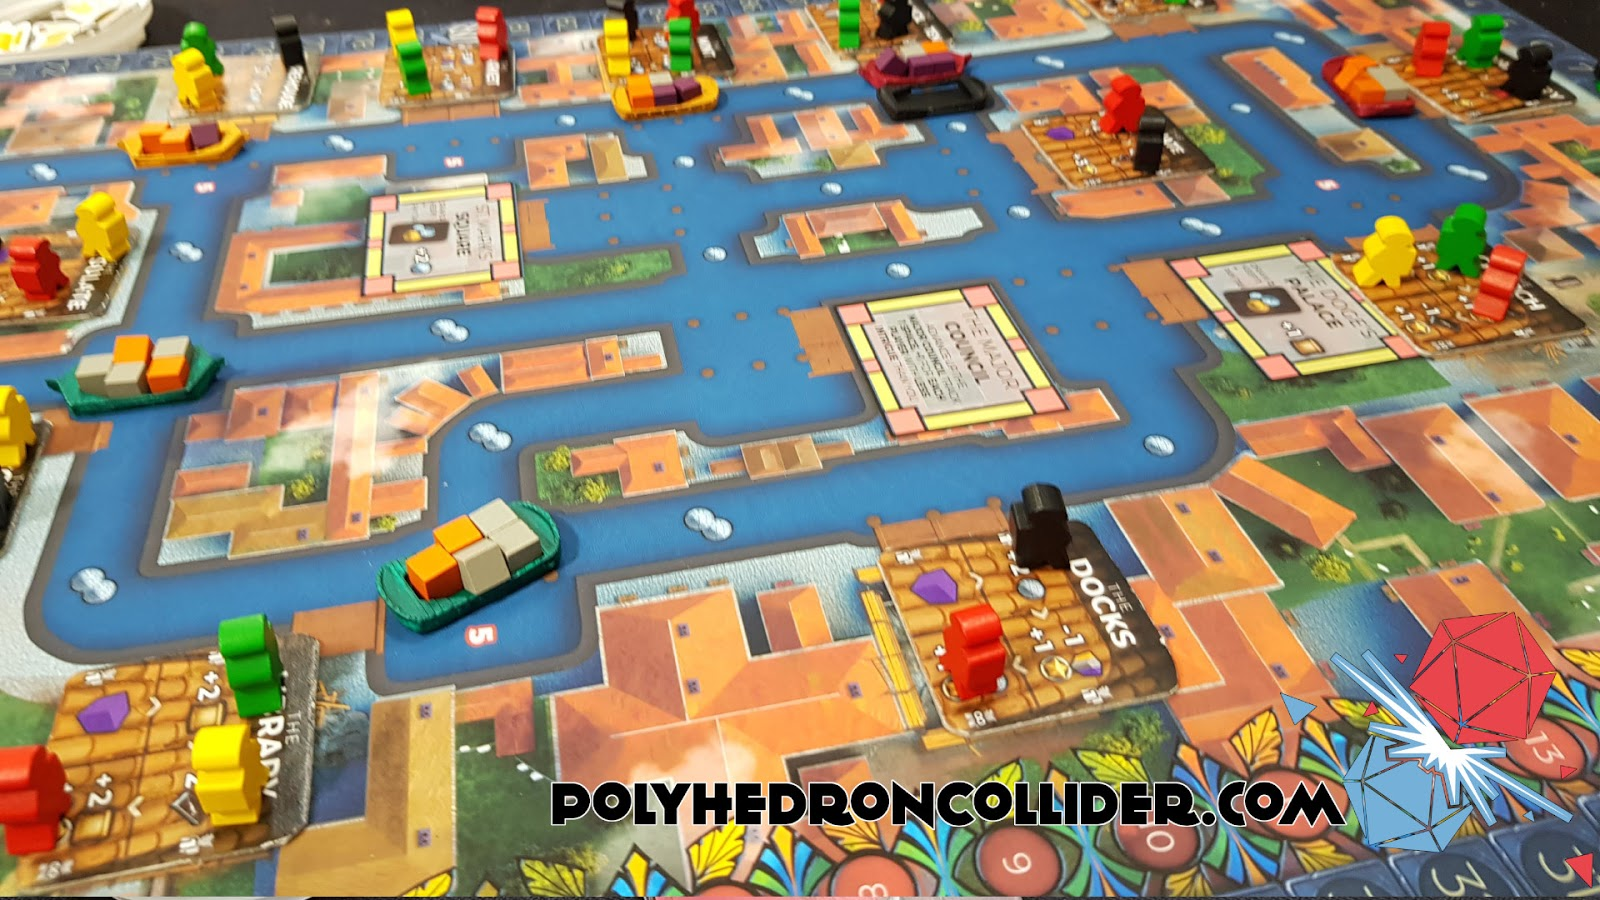 Kickstarter Highlight Venice Board Game in play 4 at UK Games Expo